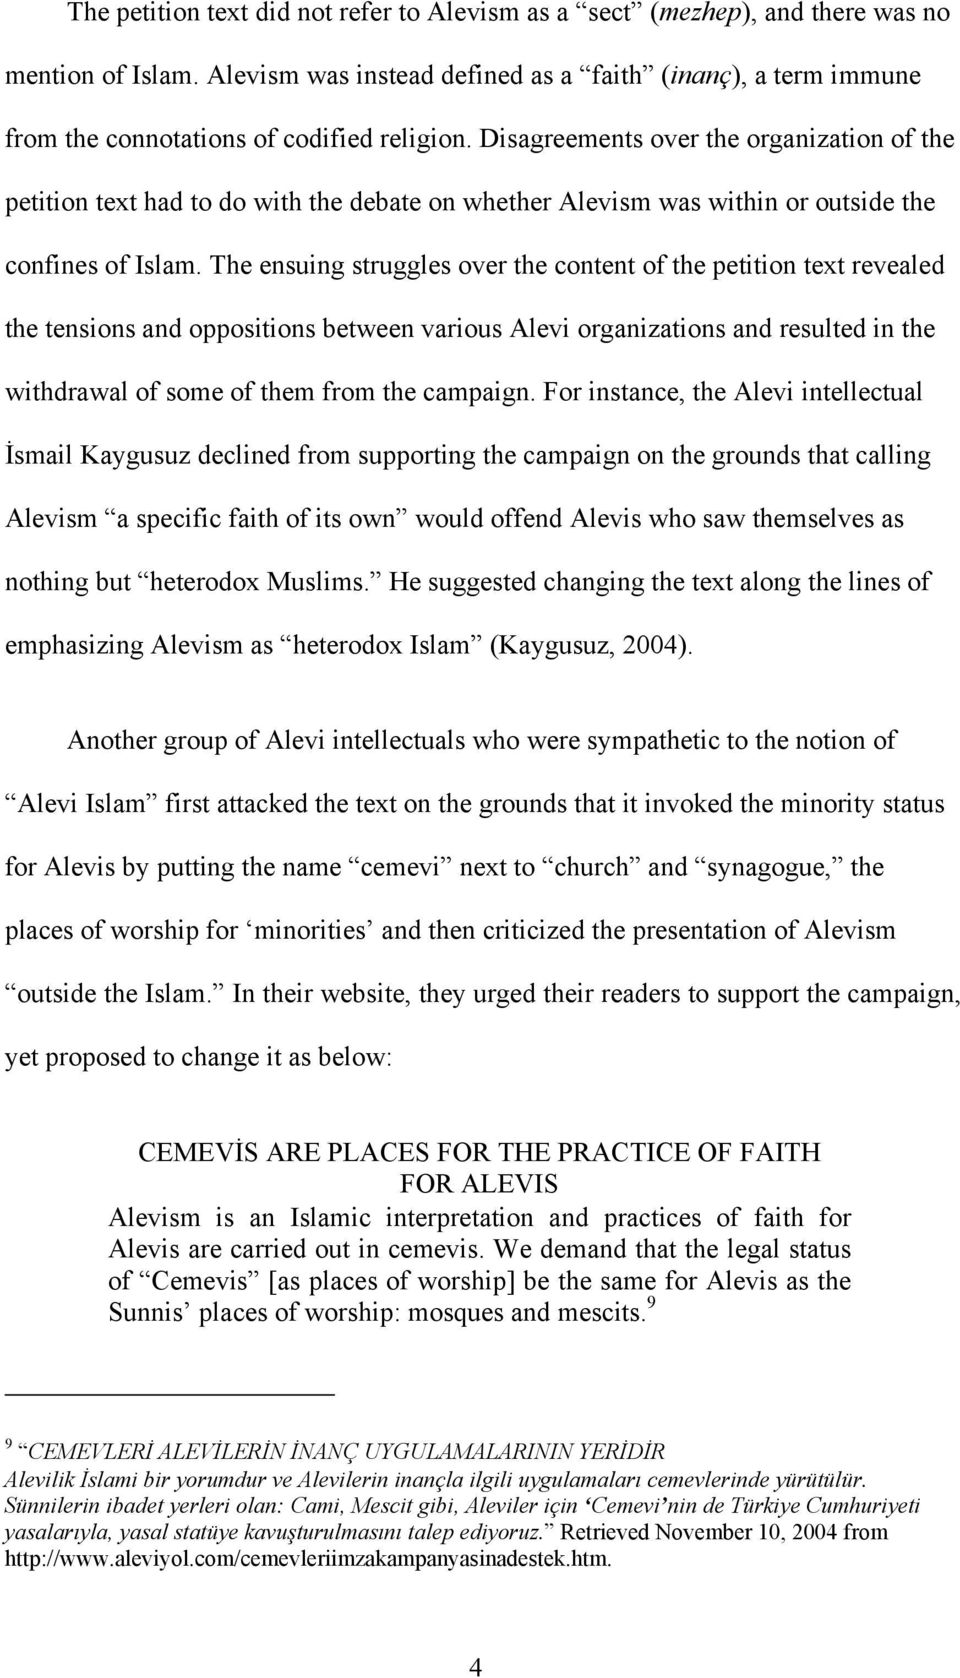 Disagreements over the organization of the petition text had to do with the debate on whether Alevism was within or outside the confines of Islam.